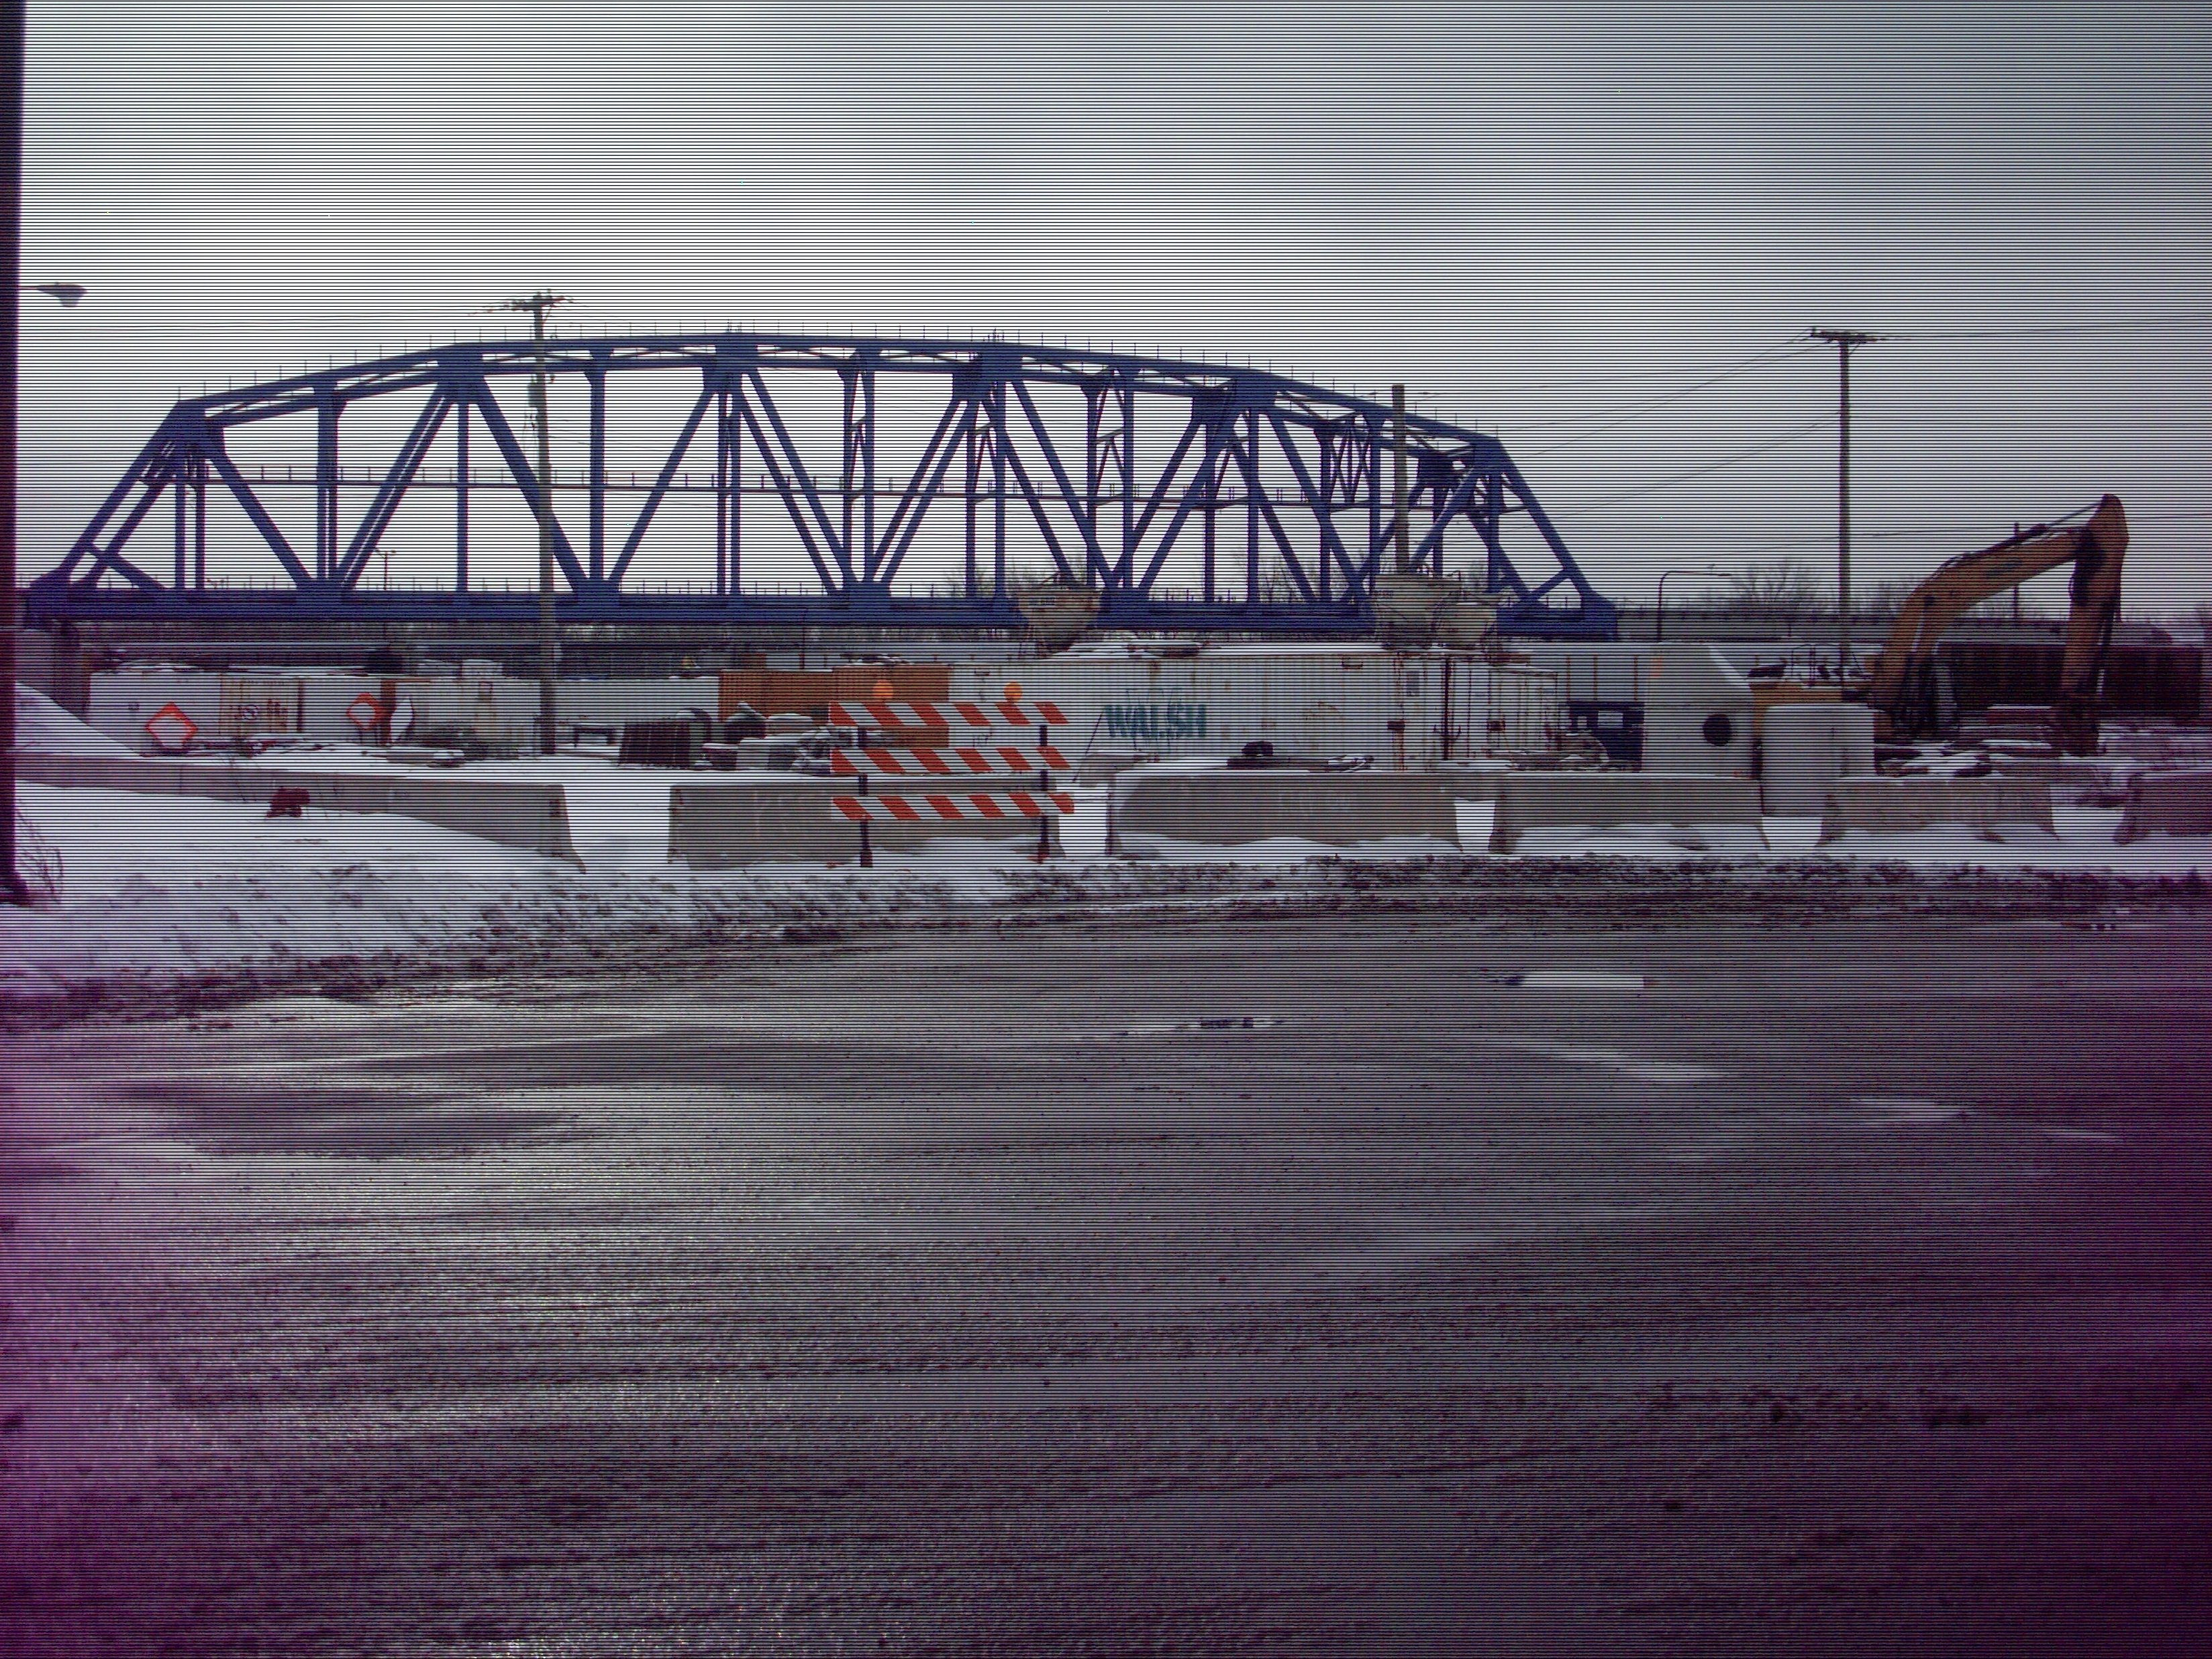 The Walsh Torrence Bridge project is underway for the Chicago South Shore and South Bend commuter rail line. #InvestinUS